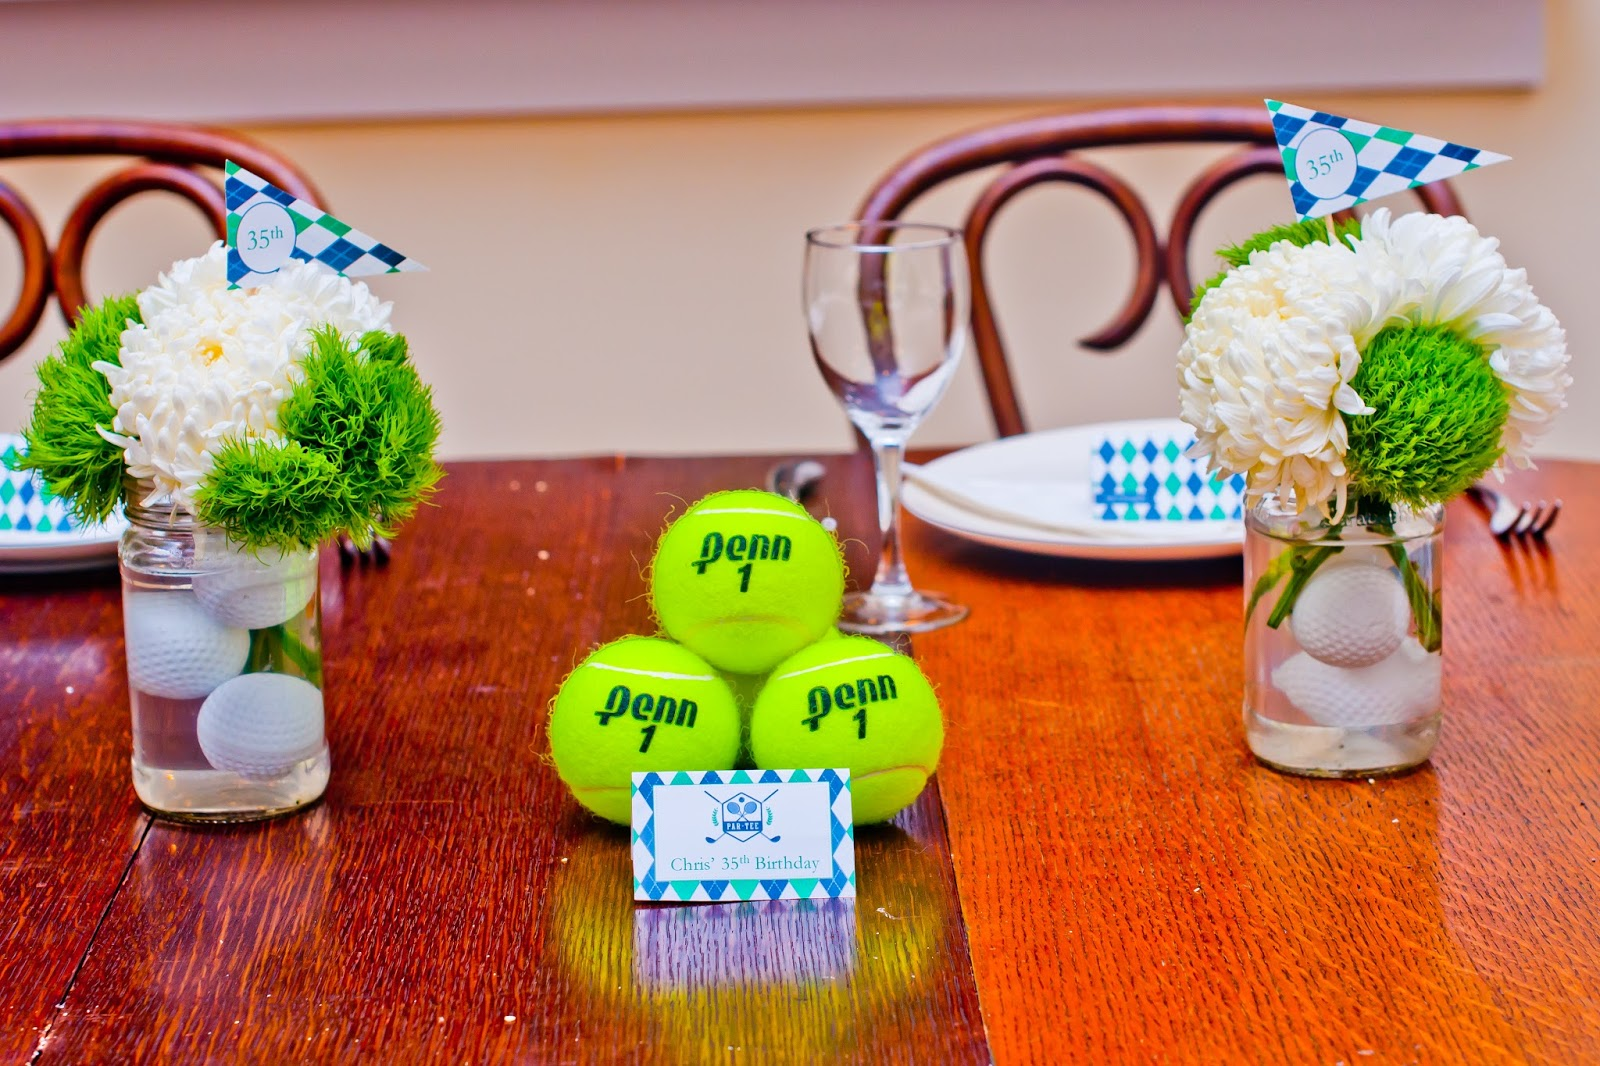 Golf Pros and Tennis Hoes Par-tee